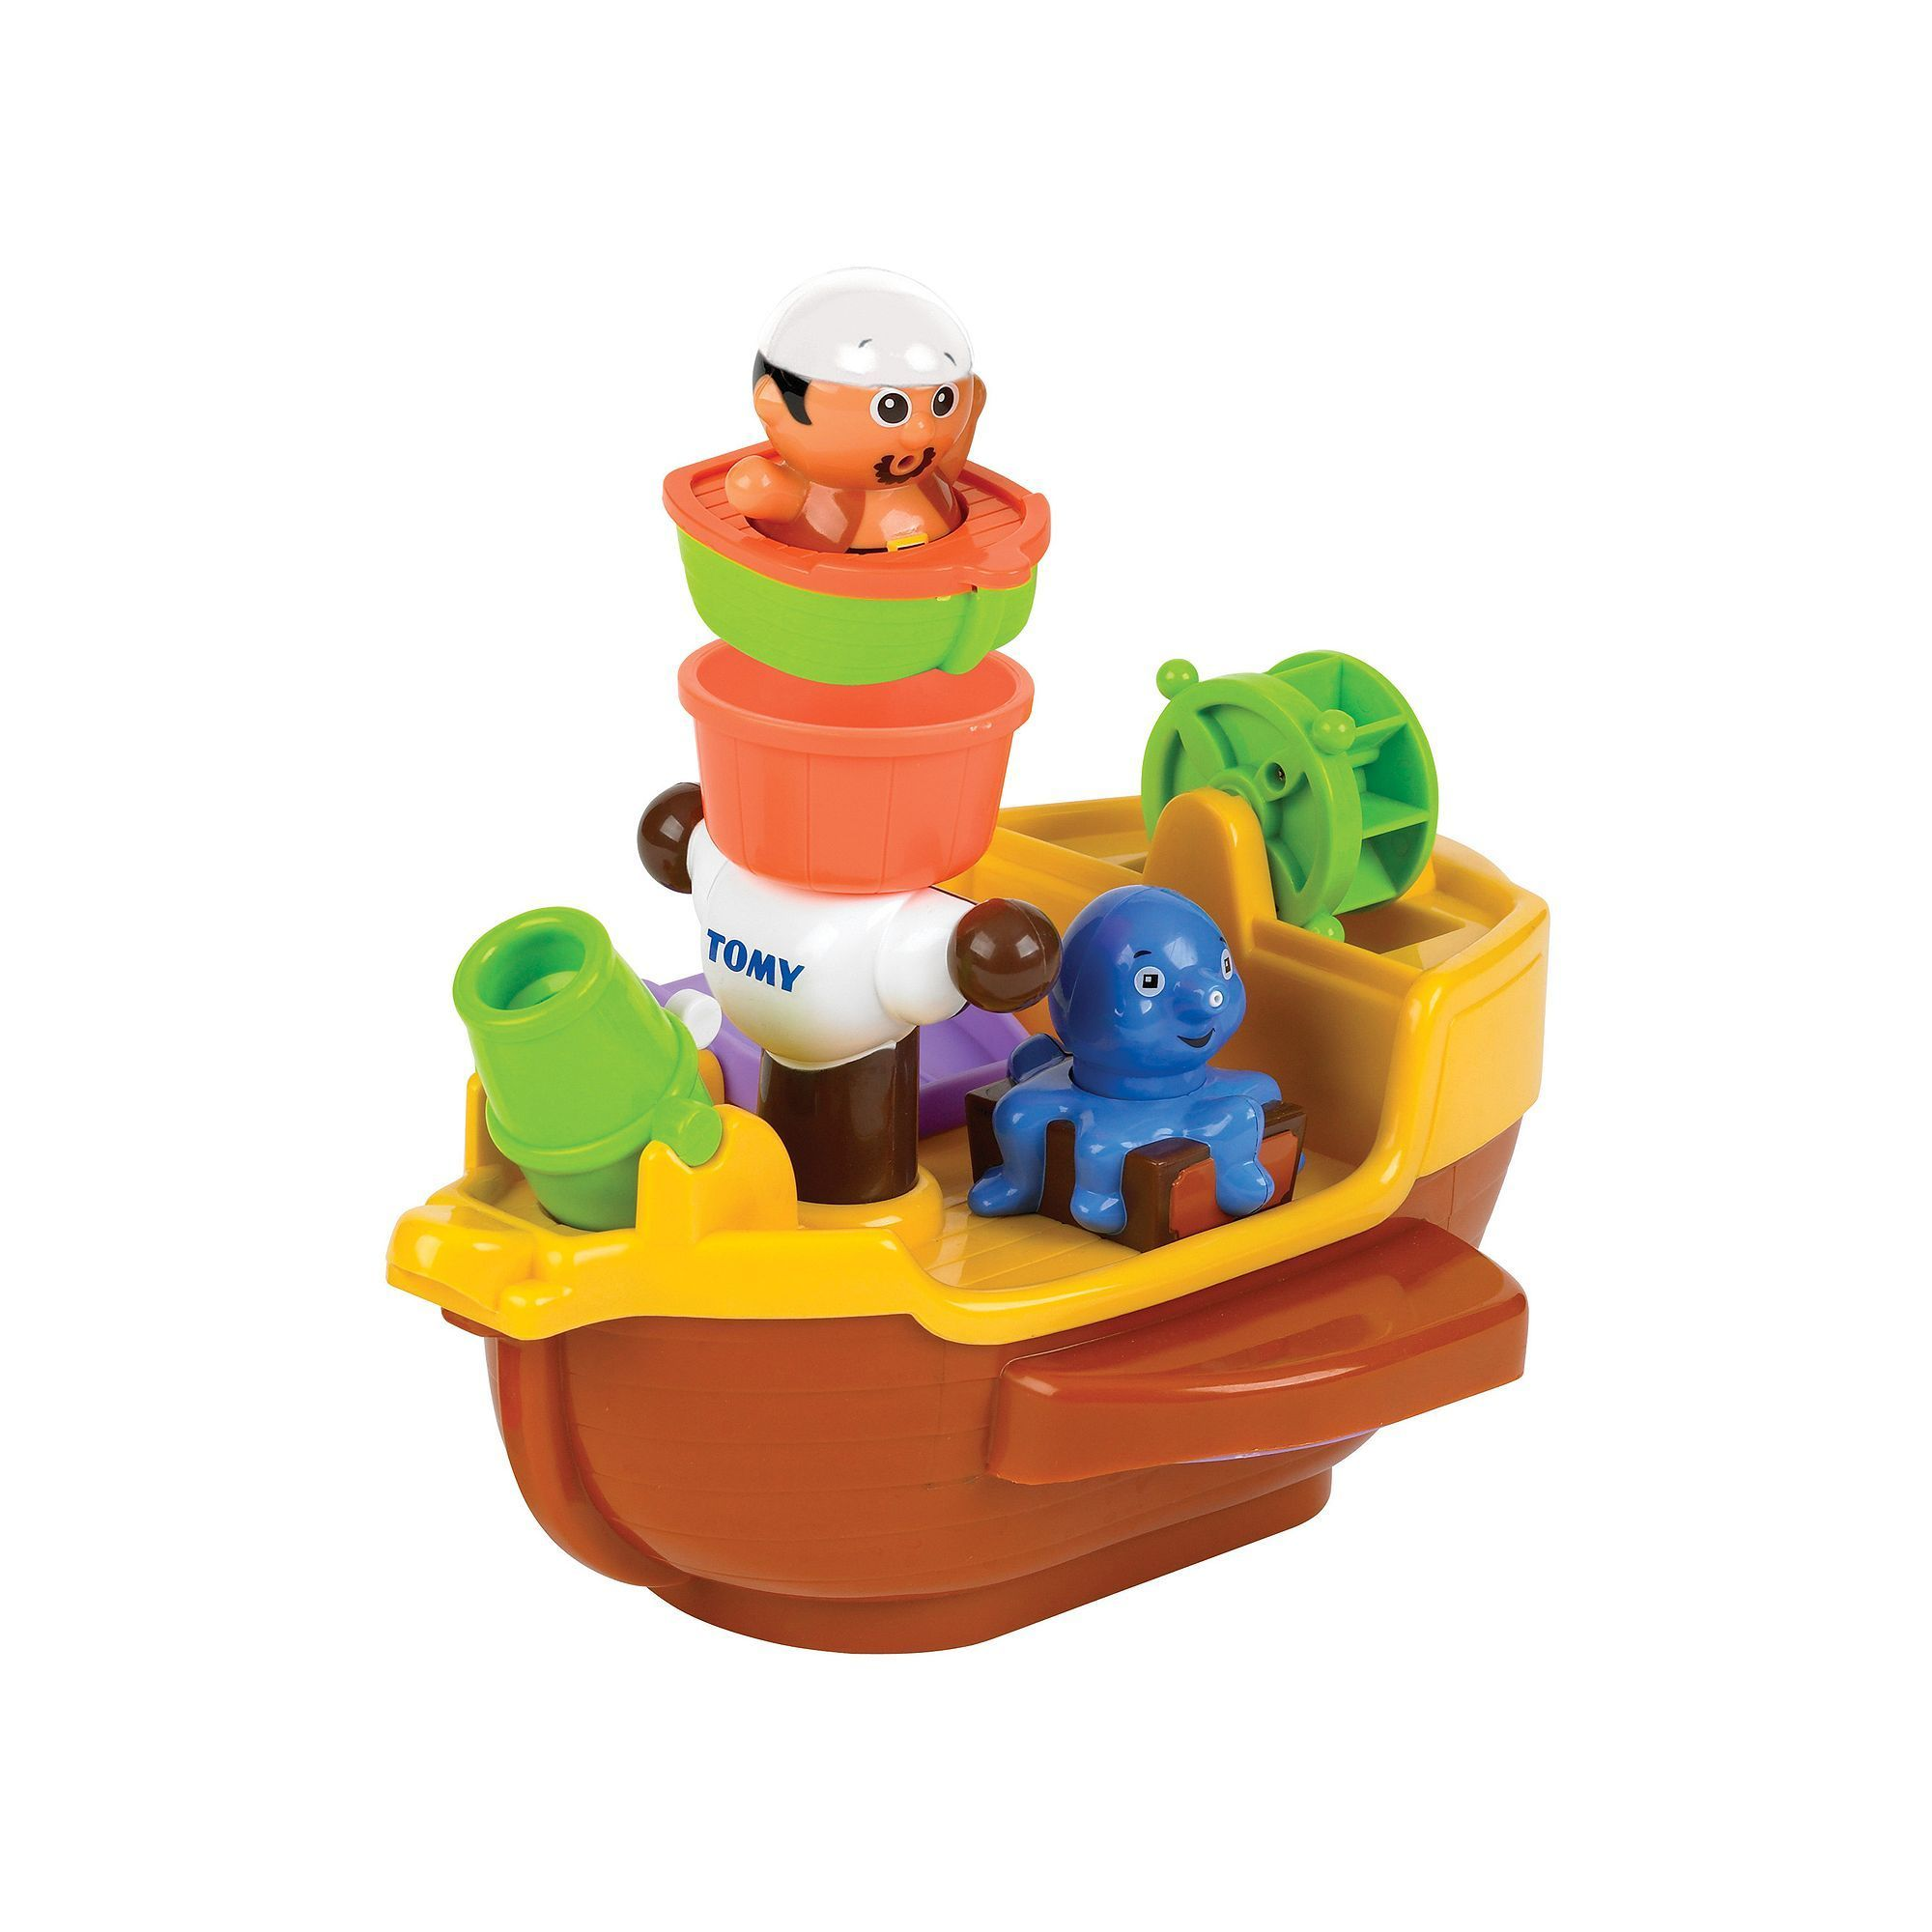 Tomy Pirate Ship Bath Toy, Multicolor | Products | Pinterest | Bath ...